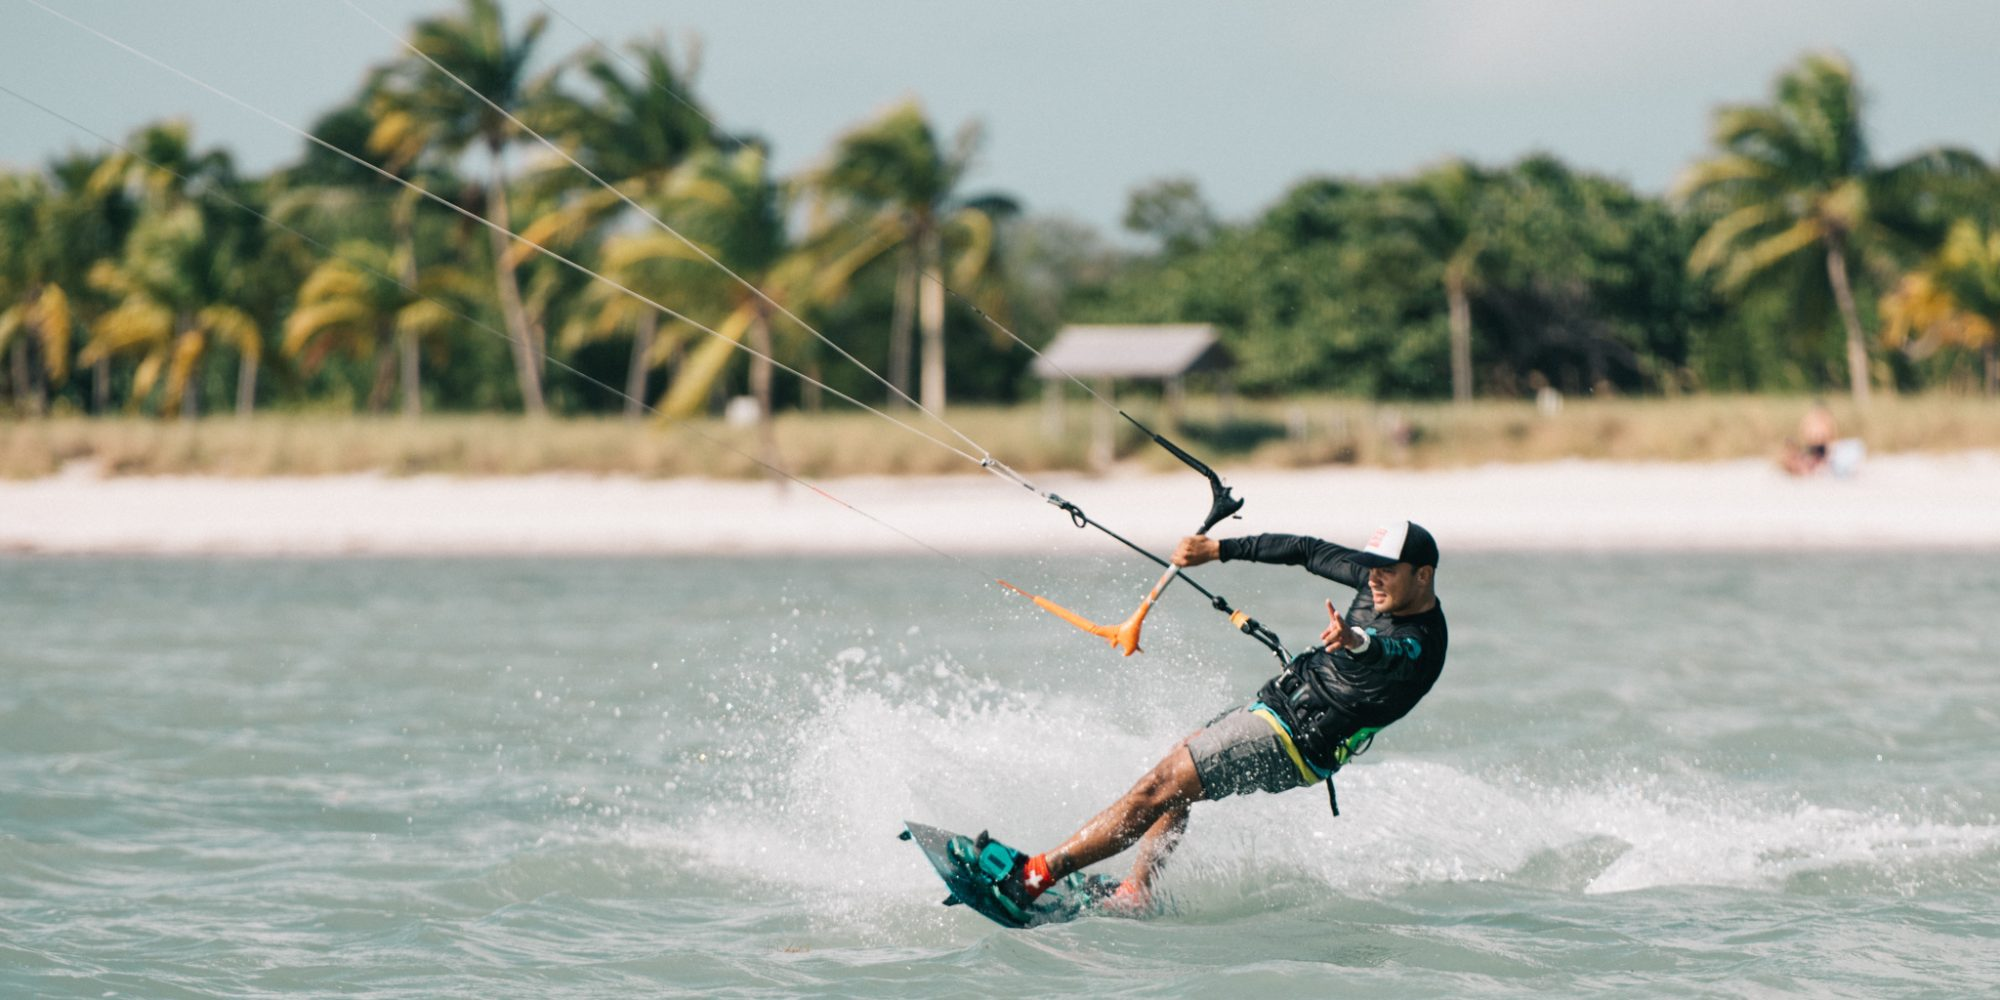 kiting-in-key-west-photos-1-2